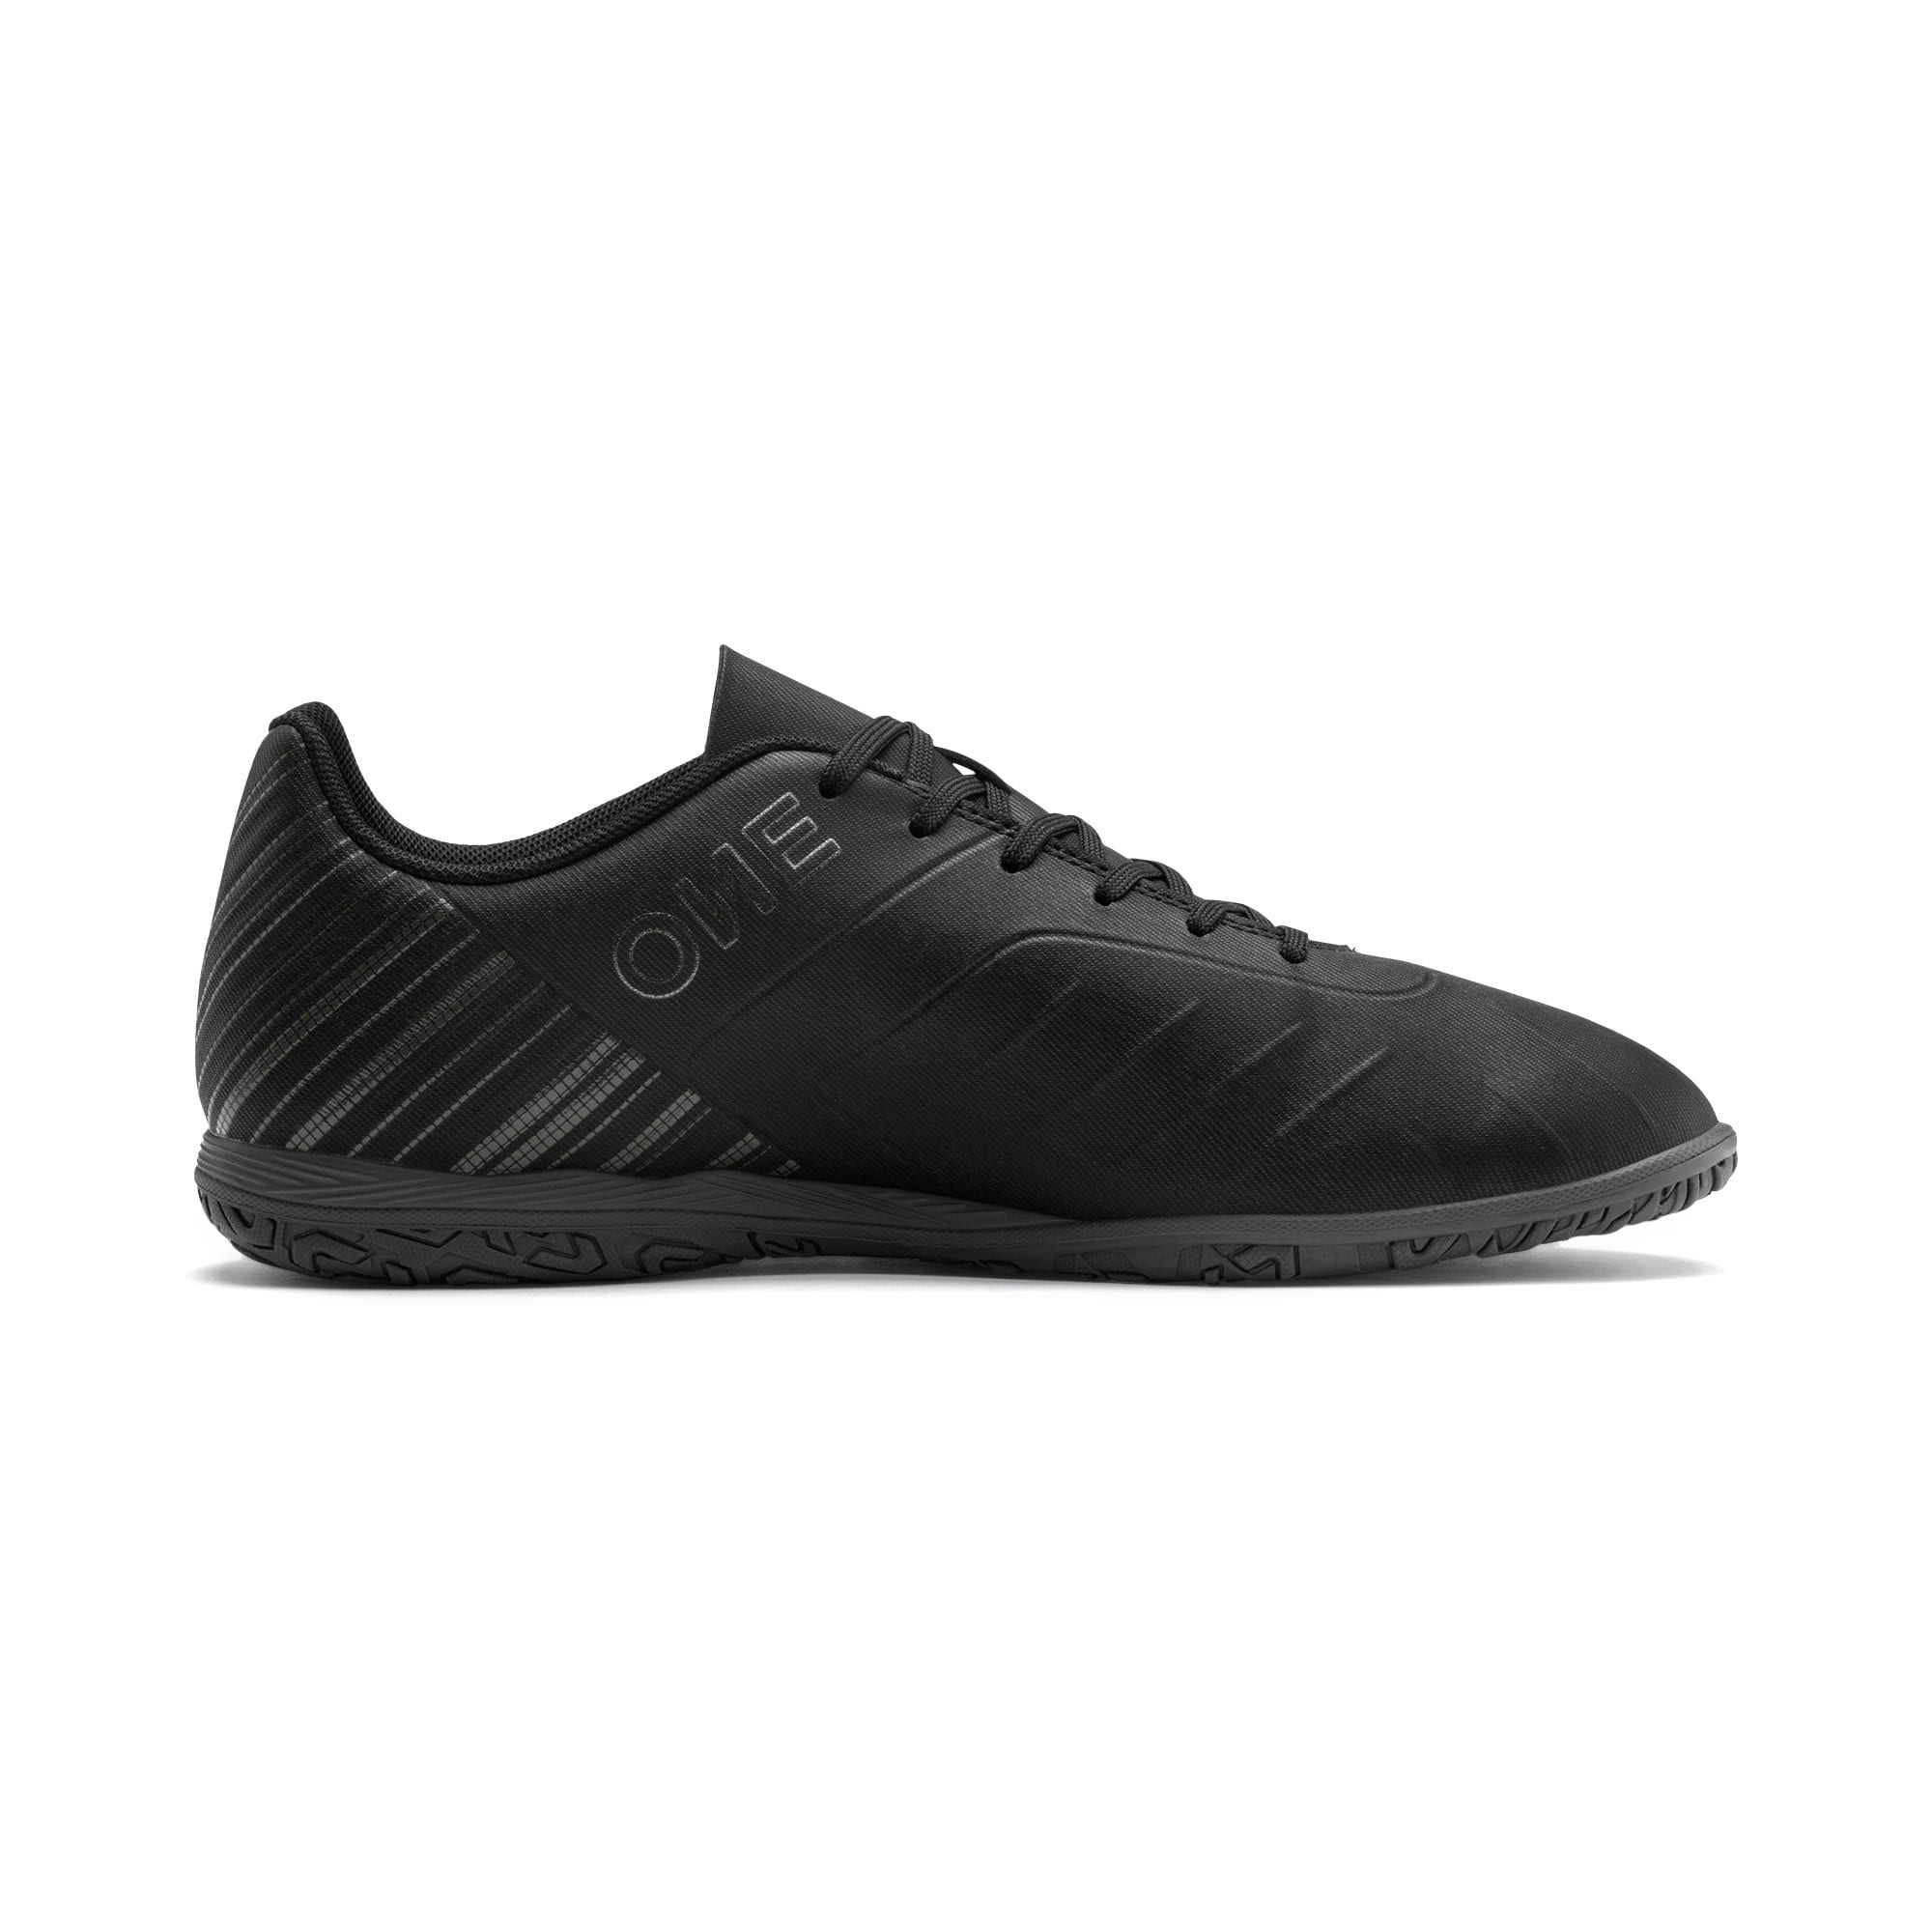 Thumbnail 6 of PUMA ONE 5.4 IT Men's Soccer Shoes, Black-Black-Puma Aged Silver, medium